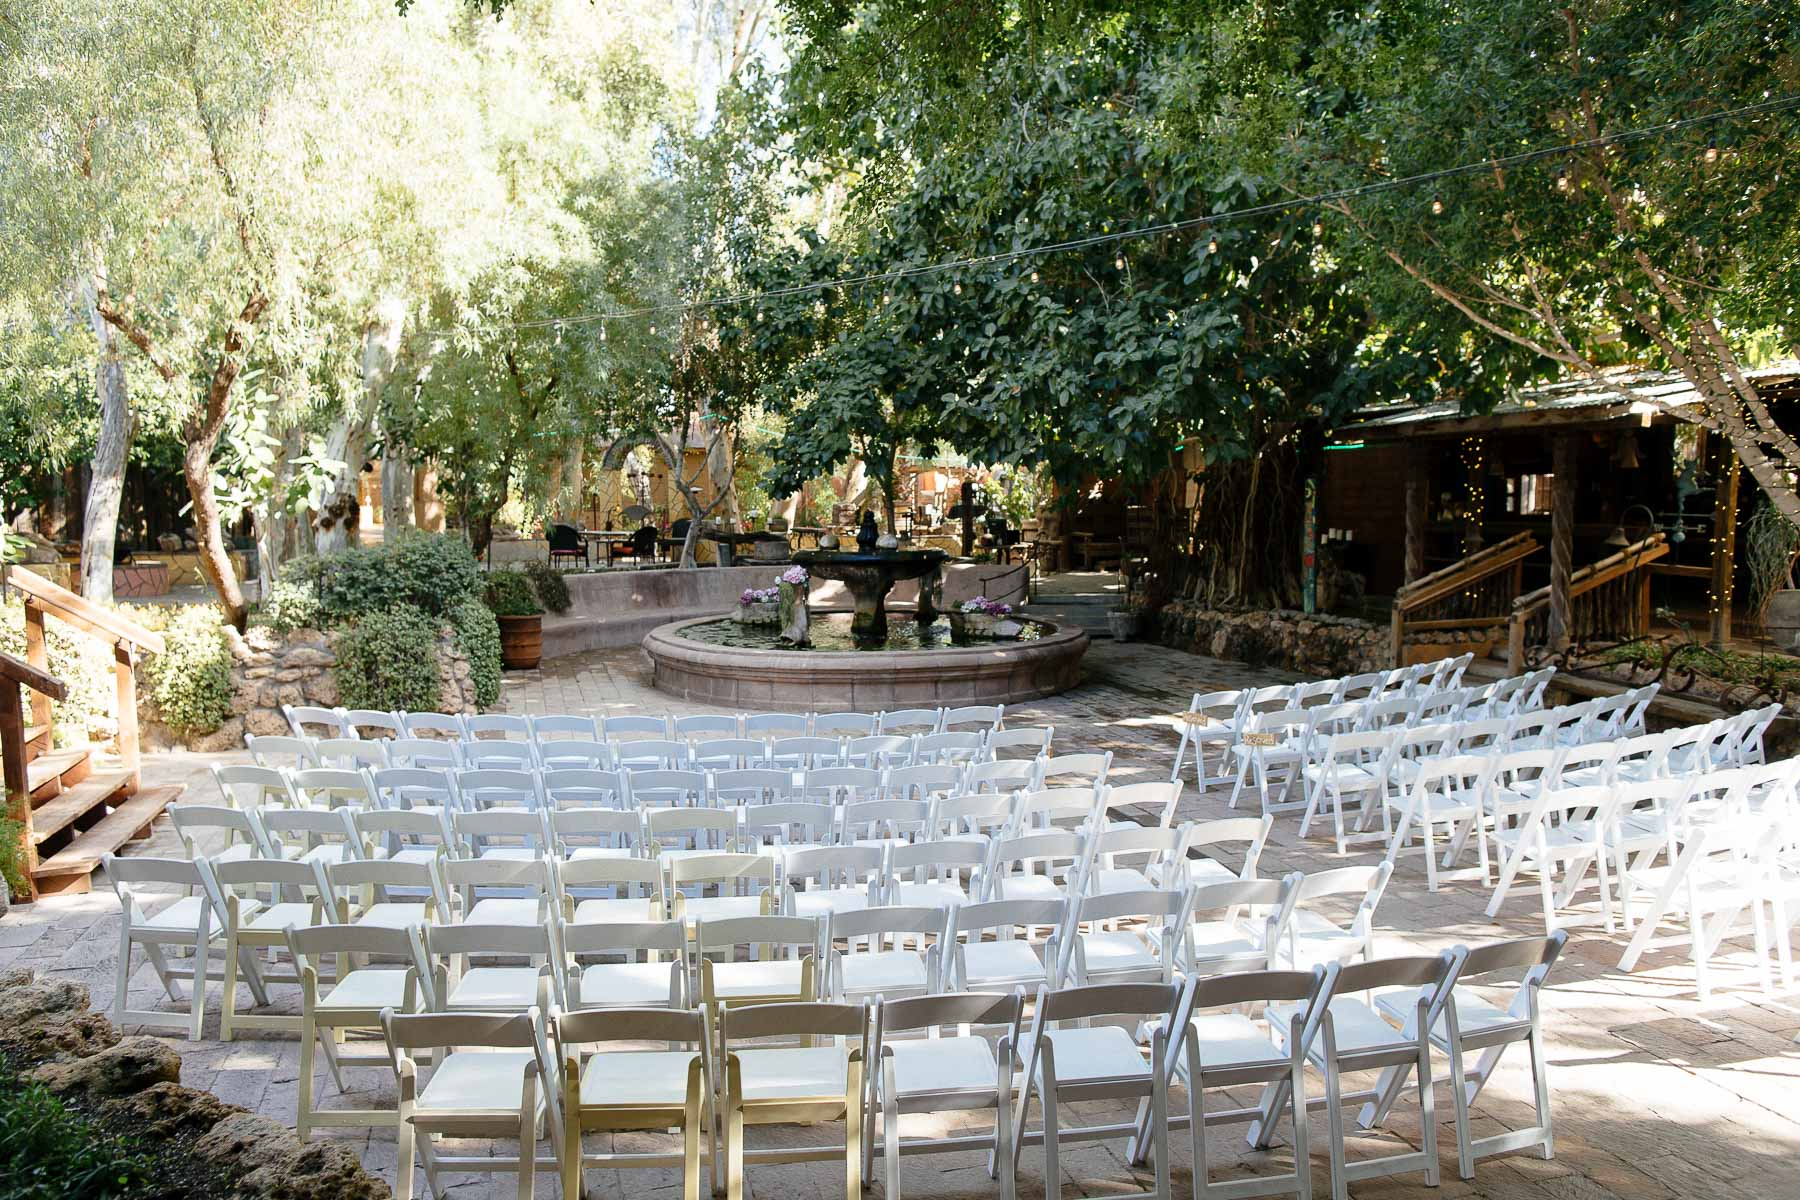 161112-Luxium-Weddings-Arizona-Jon-Madison-Boojum-Tree-First-Look-006.jpg